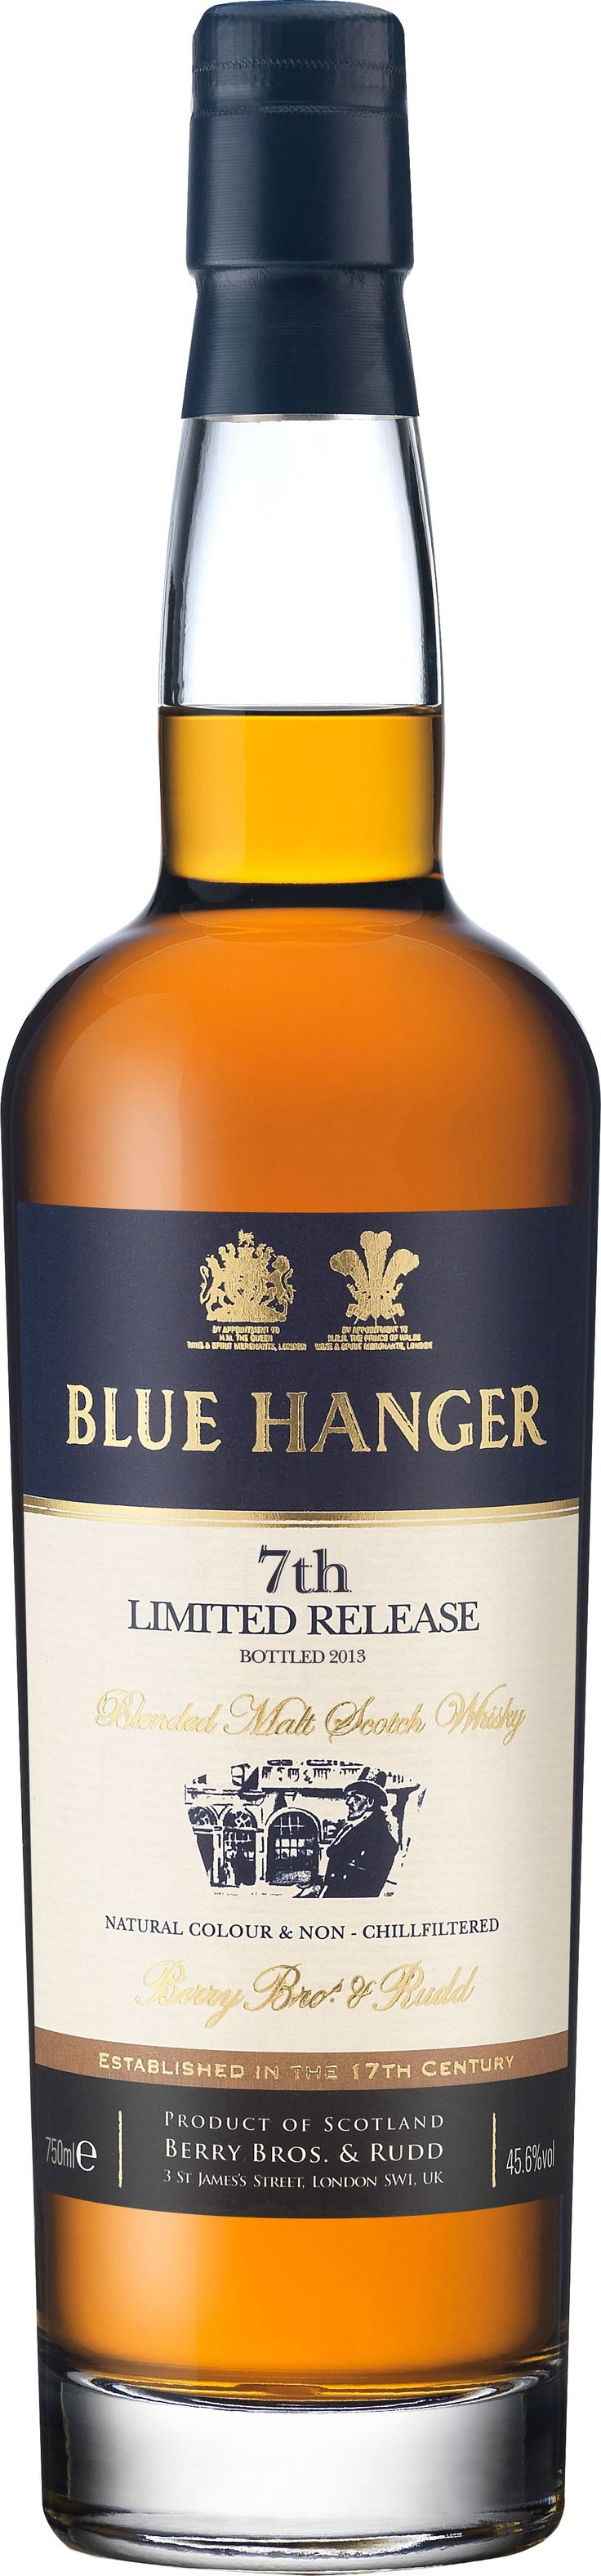 "Blue Hanger Blended Malt Scotch Whisky 7th Limited Release.  A limited release of just 3,088 bottles, this malt #Scotch whisky earned a score of 92 points from #Whisky Advocate, which called it a ""success story"" and ""excellent."" 